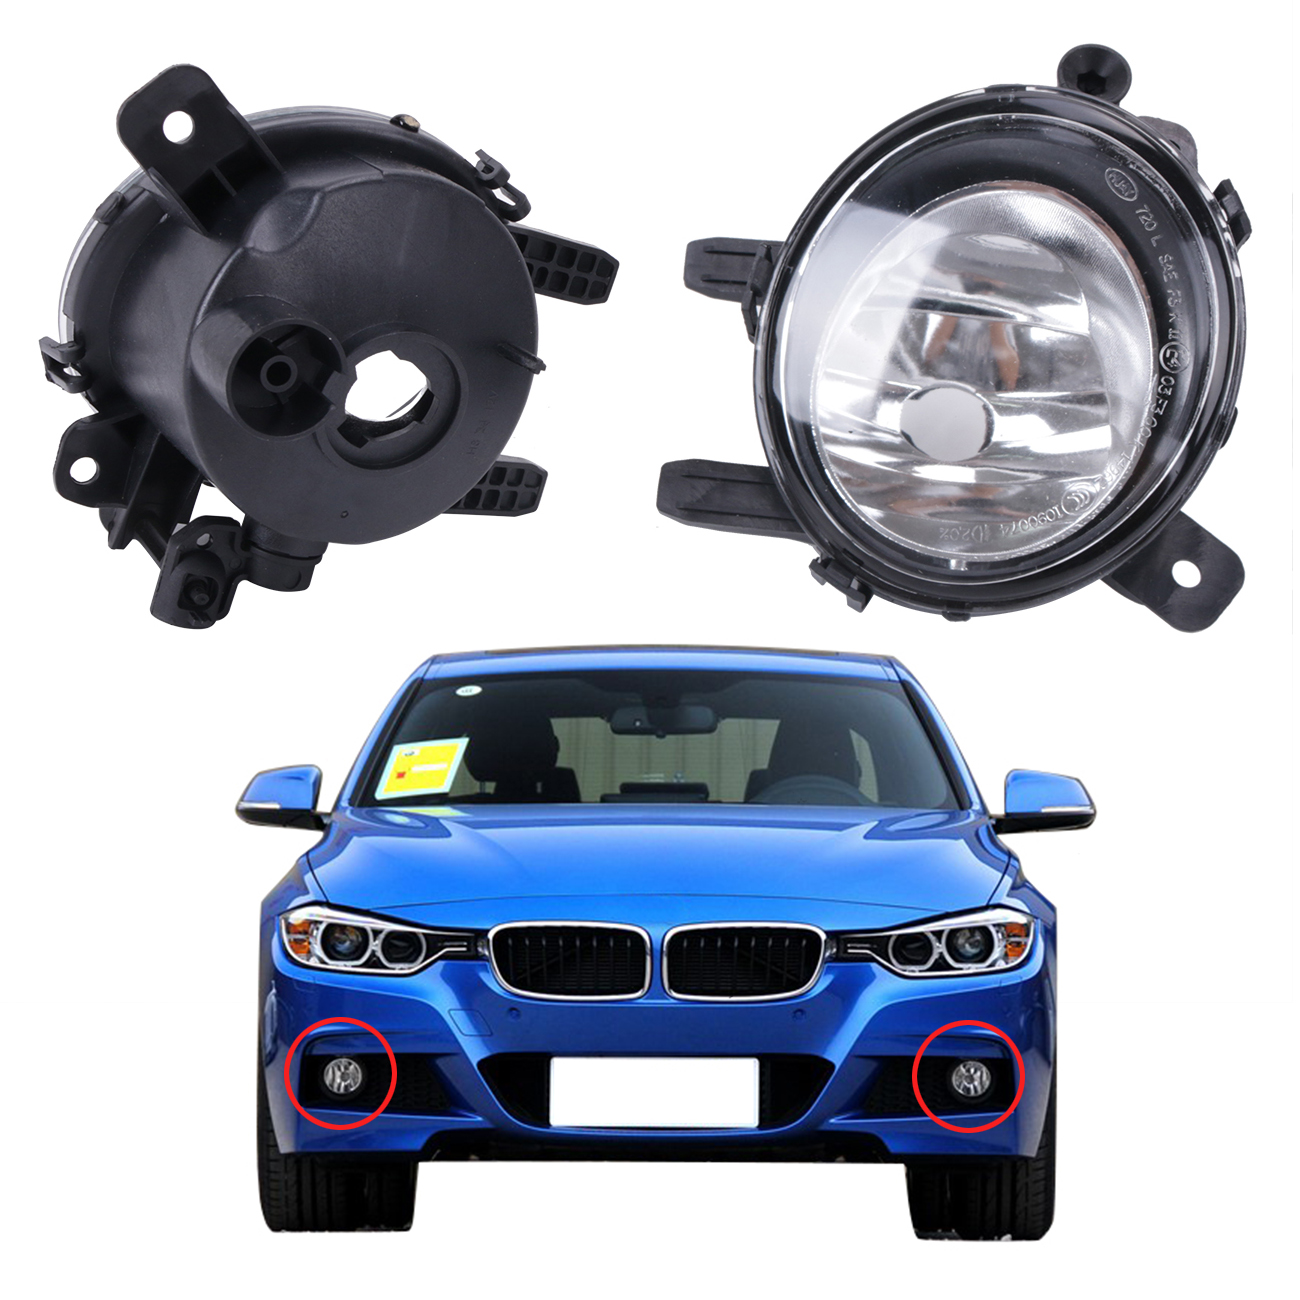 2x Car Bumper Driving Fog Light Lamp Foglamps For BMW F22 F30 F35 320i 328i 335i 3-Series 2012 2013 2014 2015 #W079